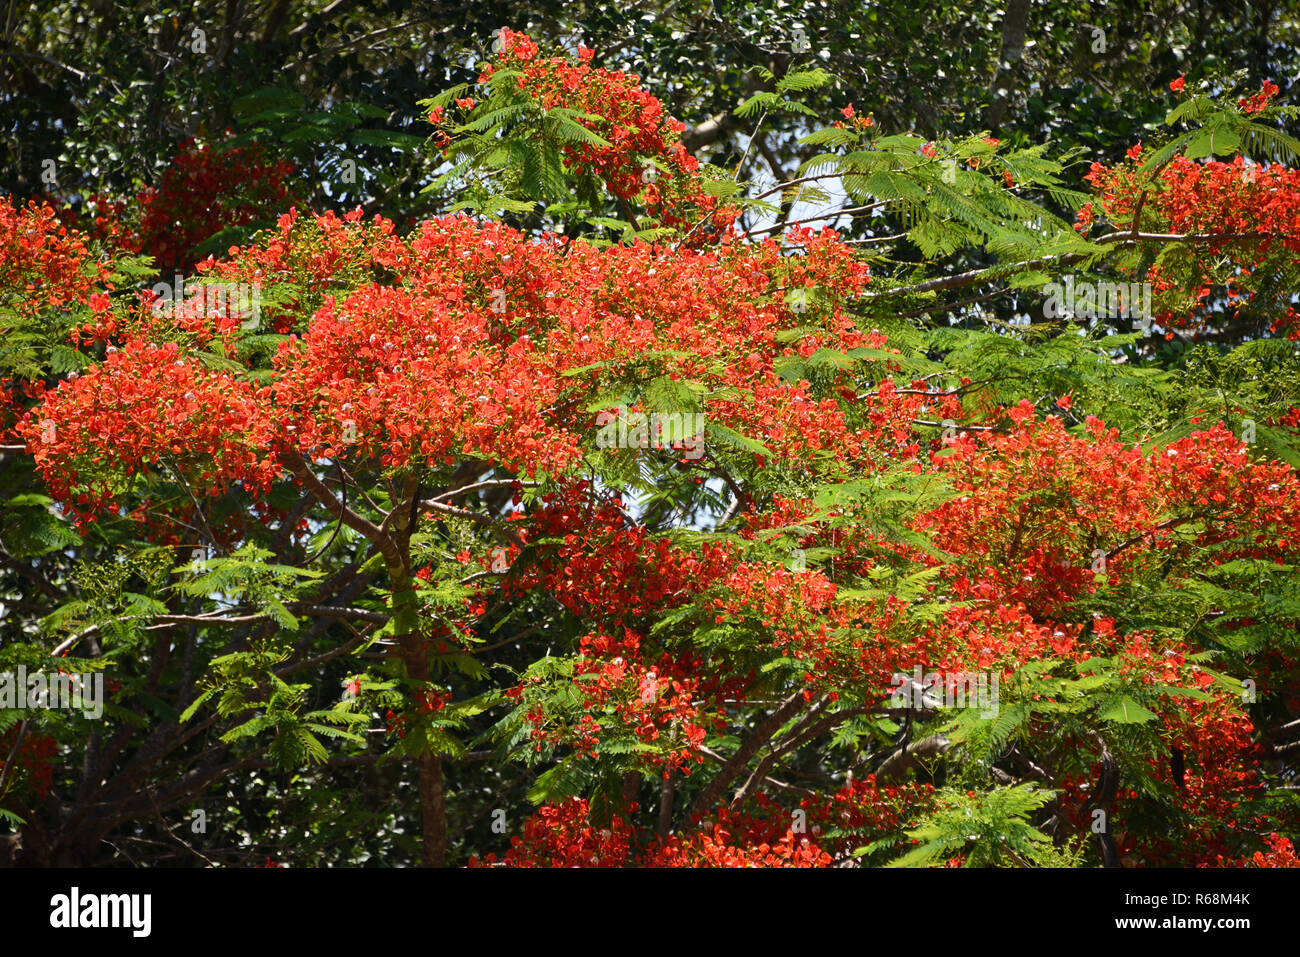 The Poinciana is native to Madagascar.  This tree flowers gorgeous orange blooms all across Queensland, Australia to welcome the coming of Summer. - Stock Image